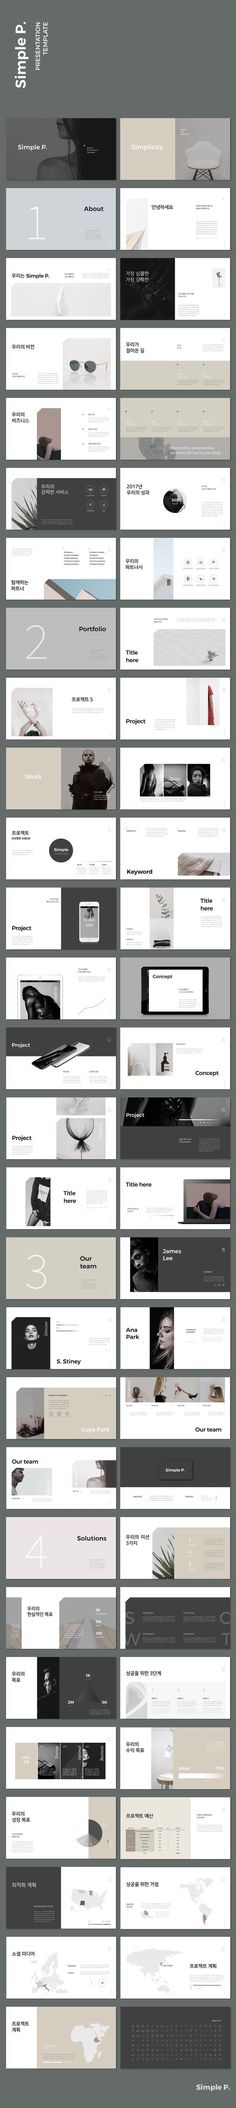 Cool Simple & Minimal Presentation Template - Keynote - Ideas of Keynote - Cool Simple & Minimal Presentation Template Layout Design, Graphisches Design, Web Layout, Book Design, Portfolio Design, Mise En Page Portfolio, Portfolio Layout, Template Portfolio, Portfolio Presentation